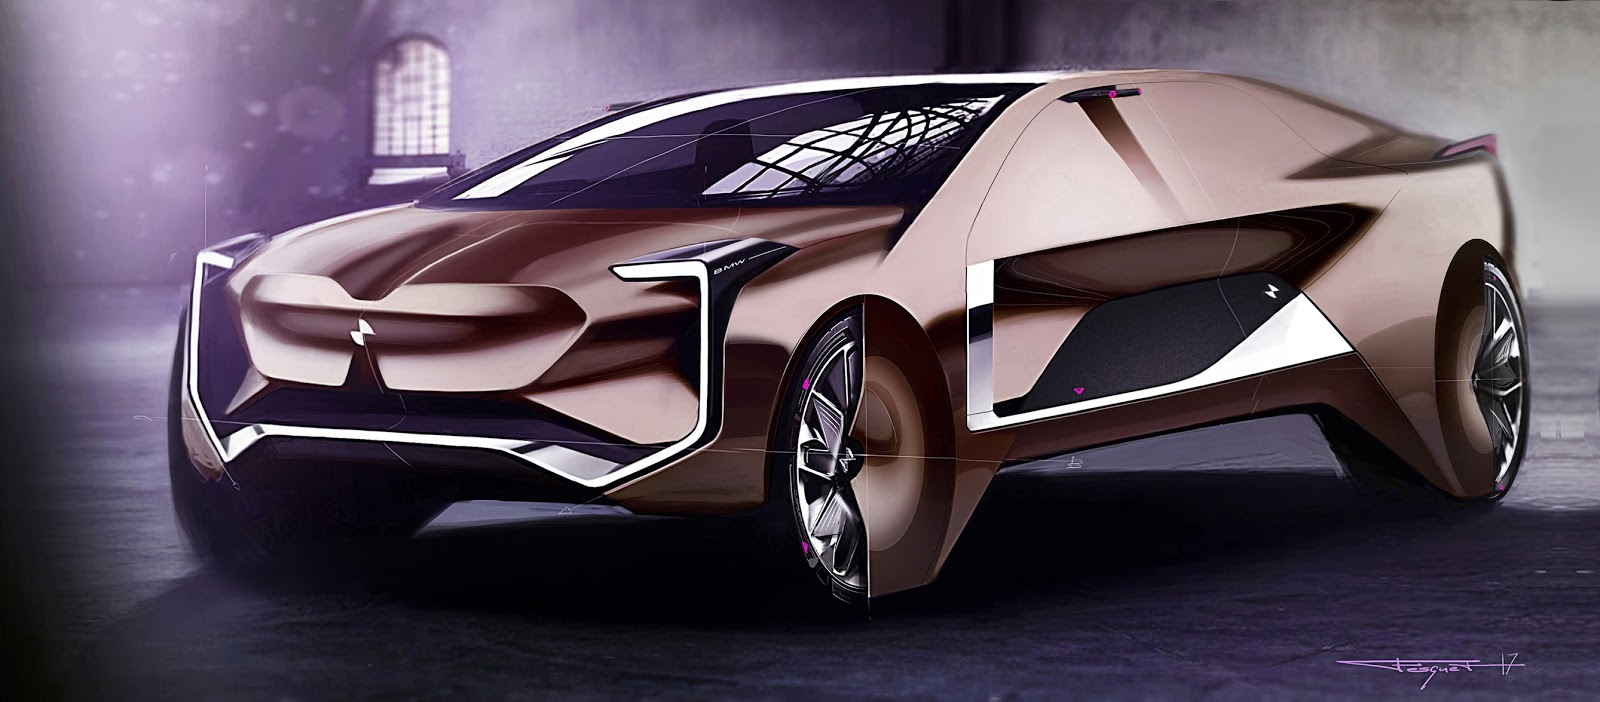 medium resolution of bmw x8 gran coupe luxury vision by julien fesquet